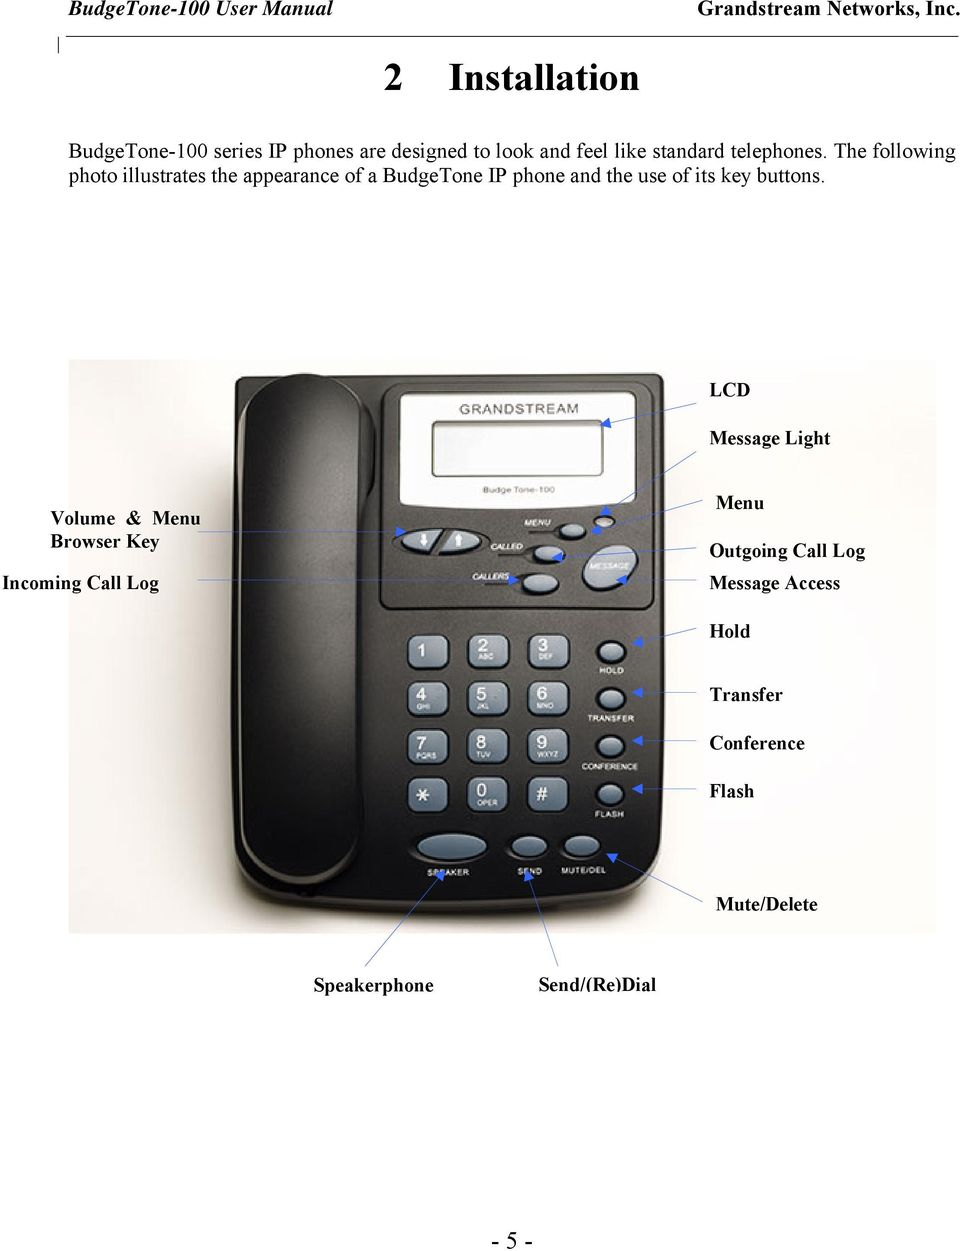 The following photo illustrates the appearance of a BudgeTone IP phone and the use of its key